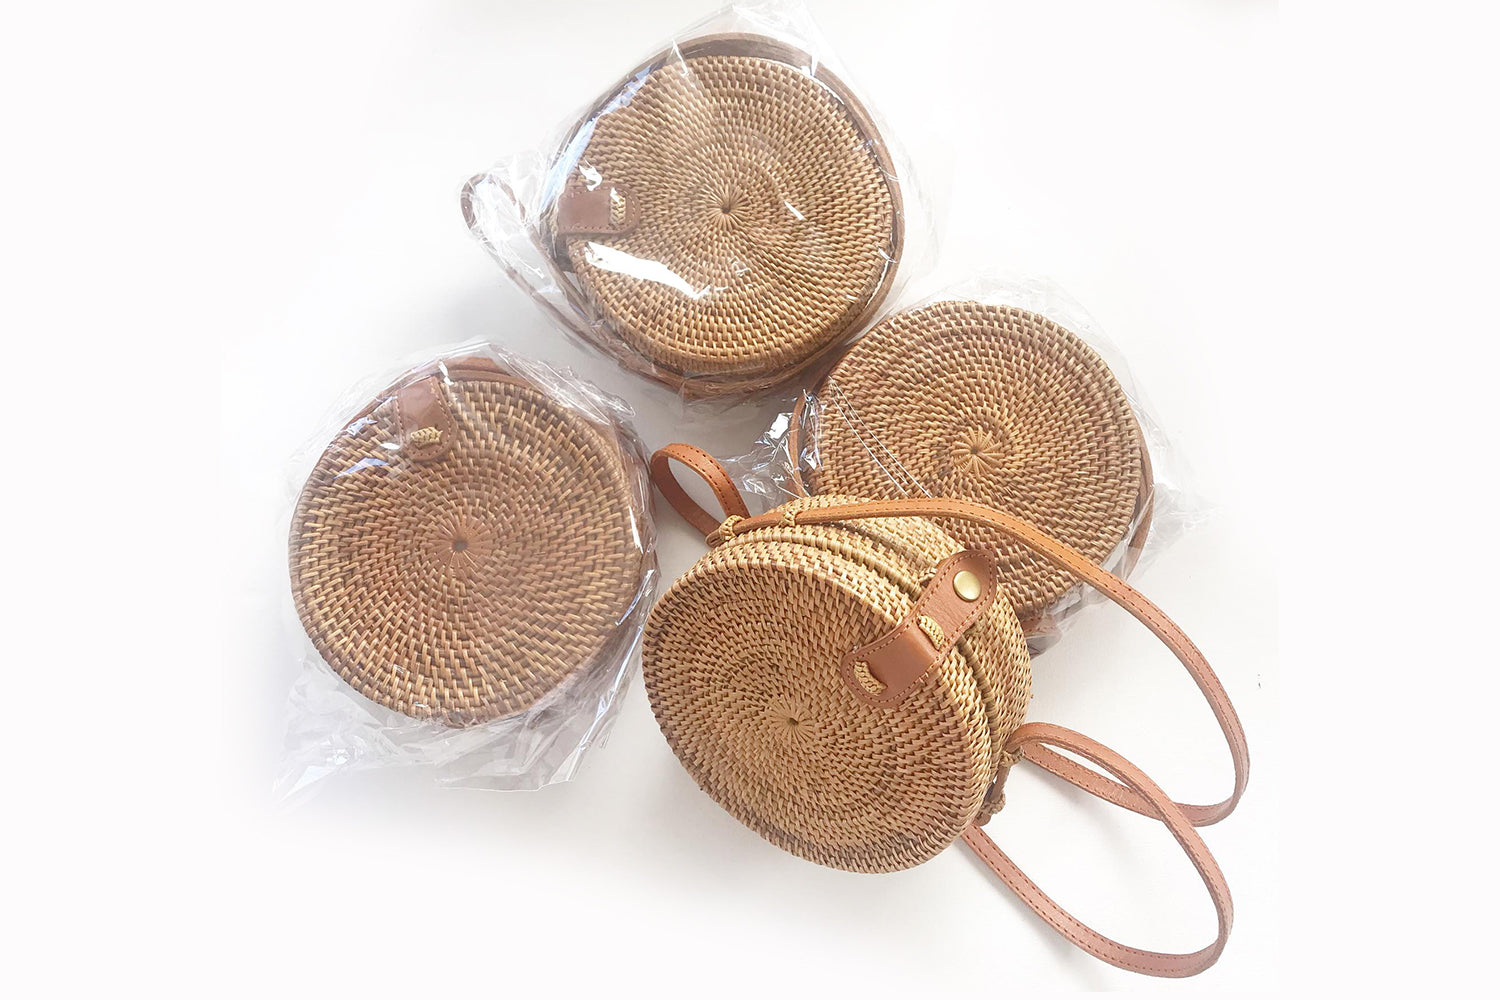 Aless Mini Rattan Round Bag - Size suitable for Mums and Kids